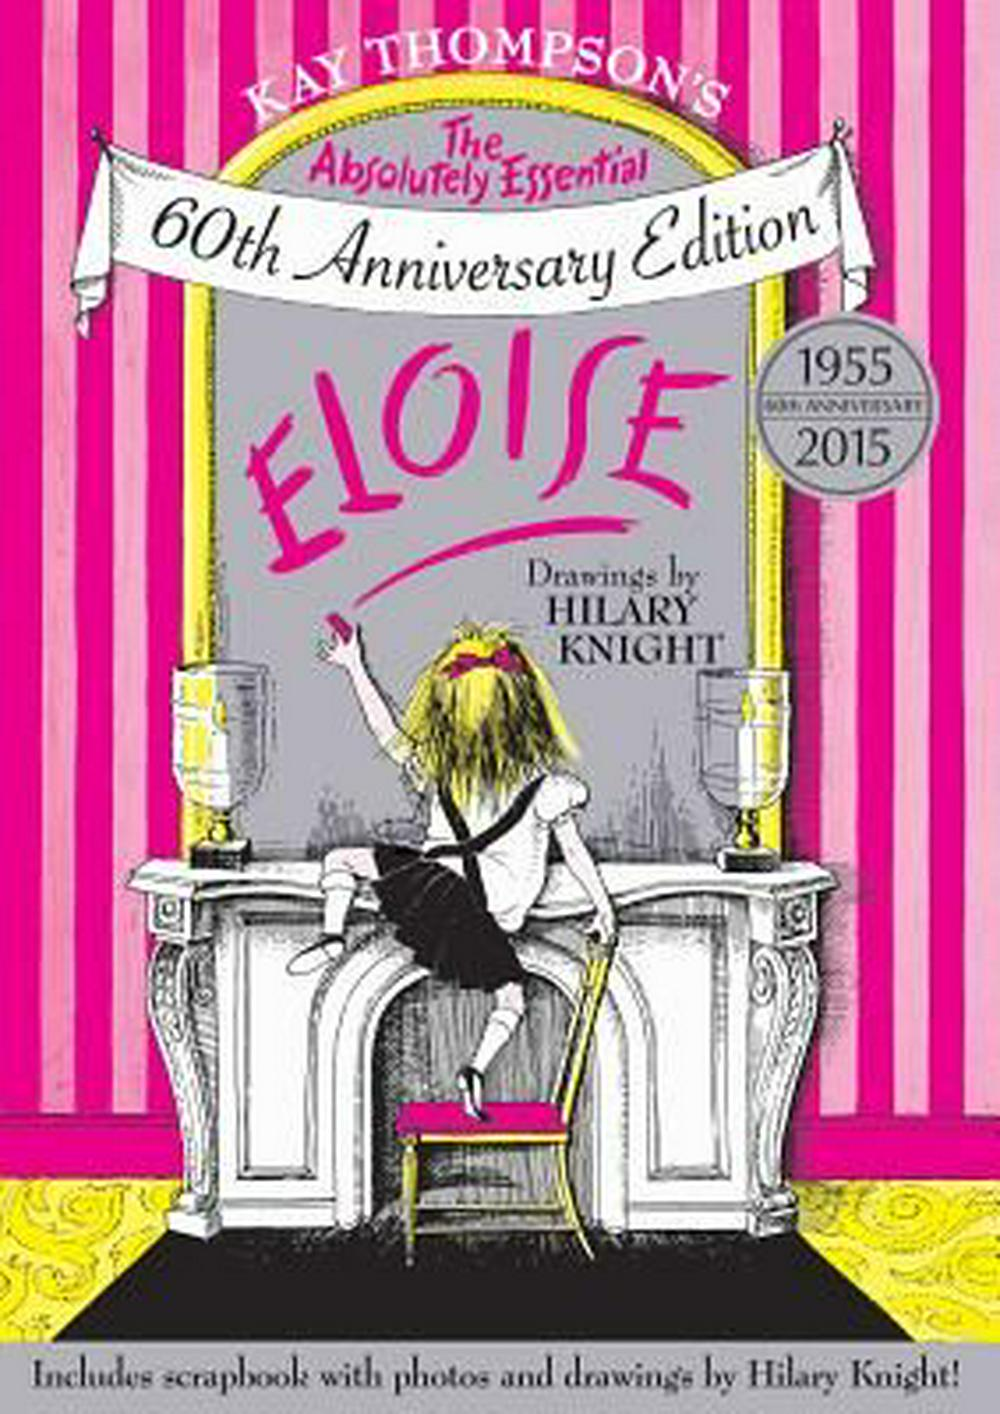 EloiseThe Absolutely Essential 60th Anniversary Edition